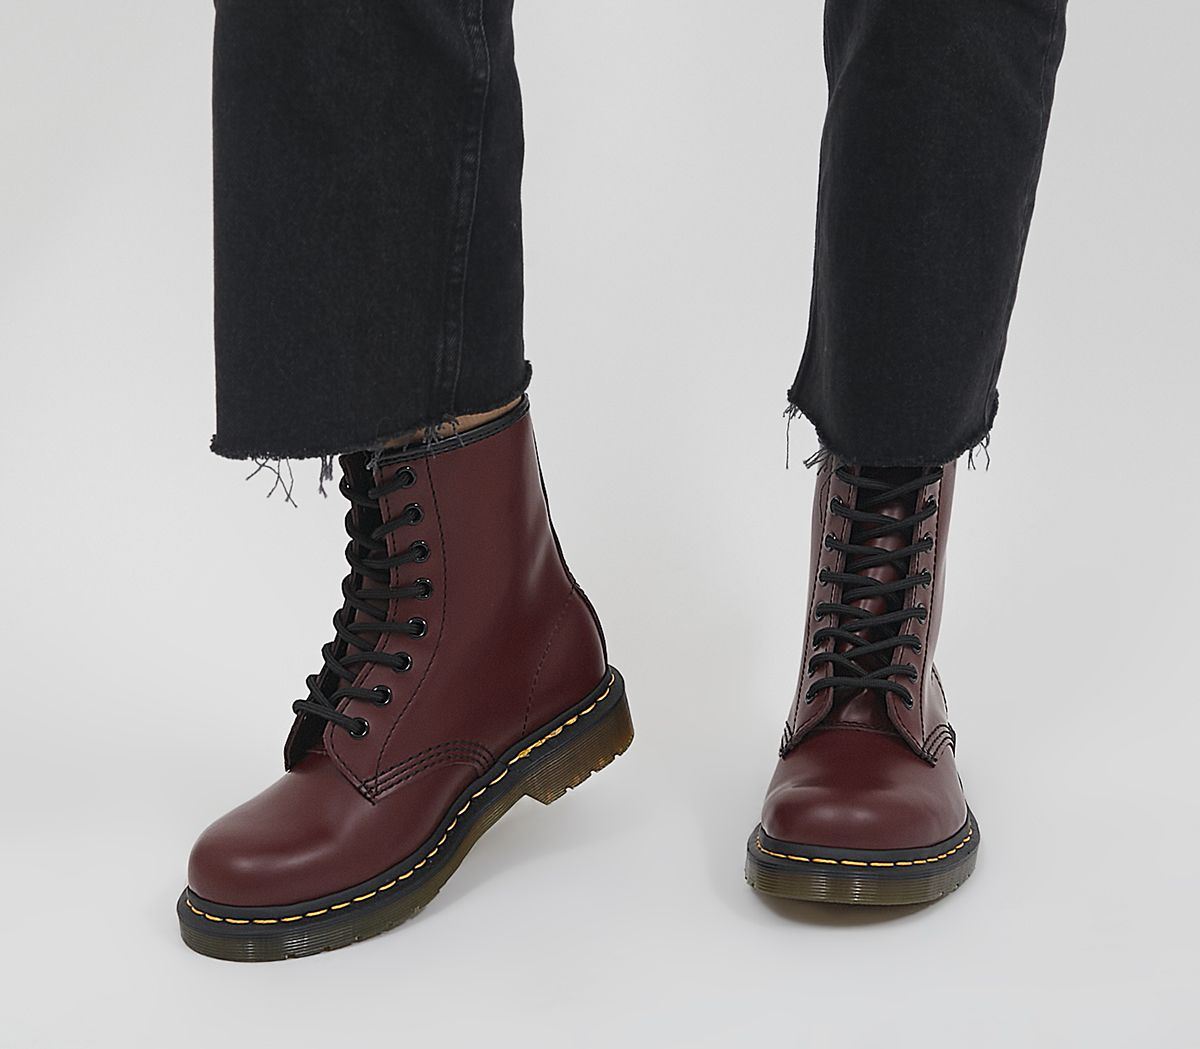 5e181c0e2a779 Dr. Martens 8 Eyelet Lace Up Boots Cherry Red - Ankle Boots